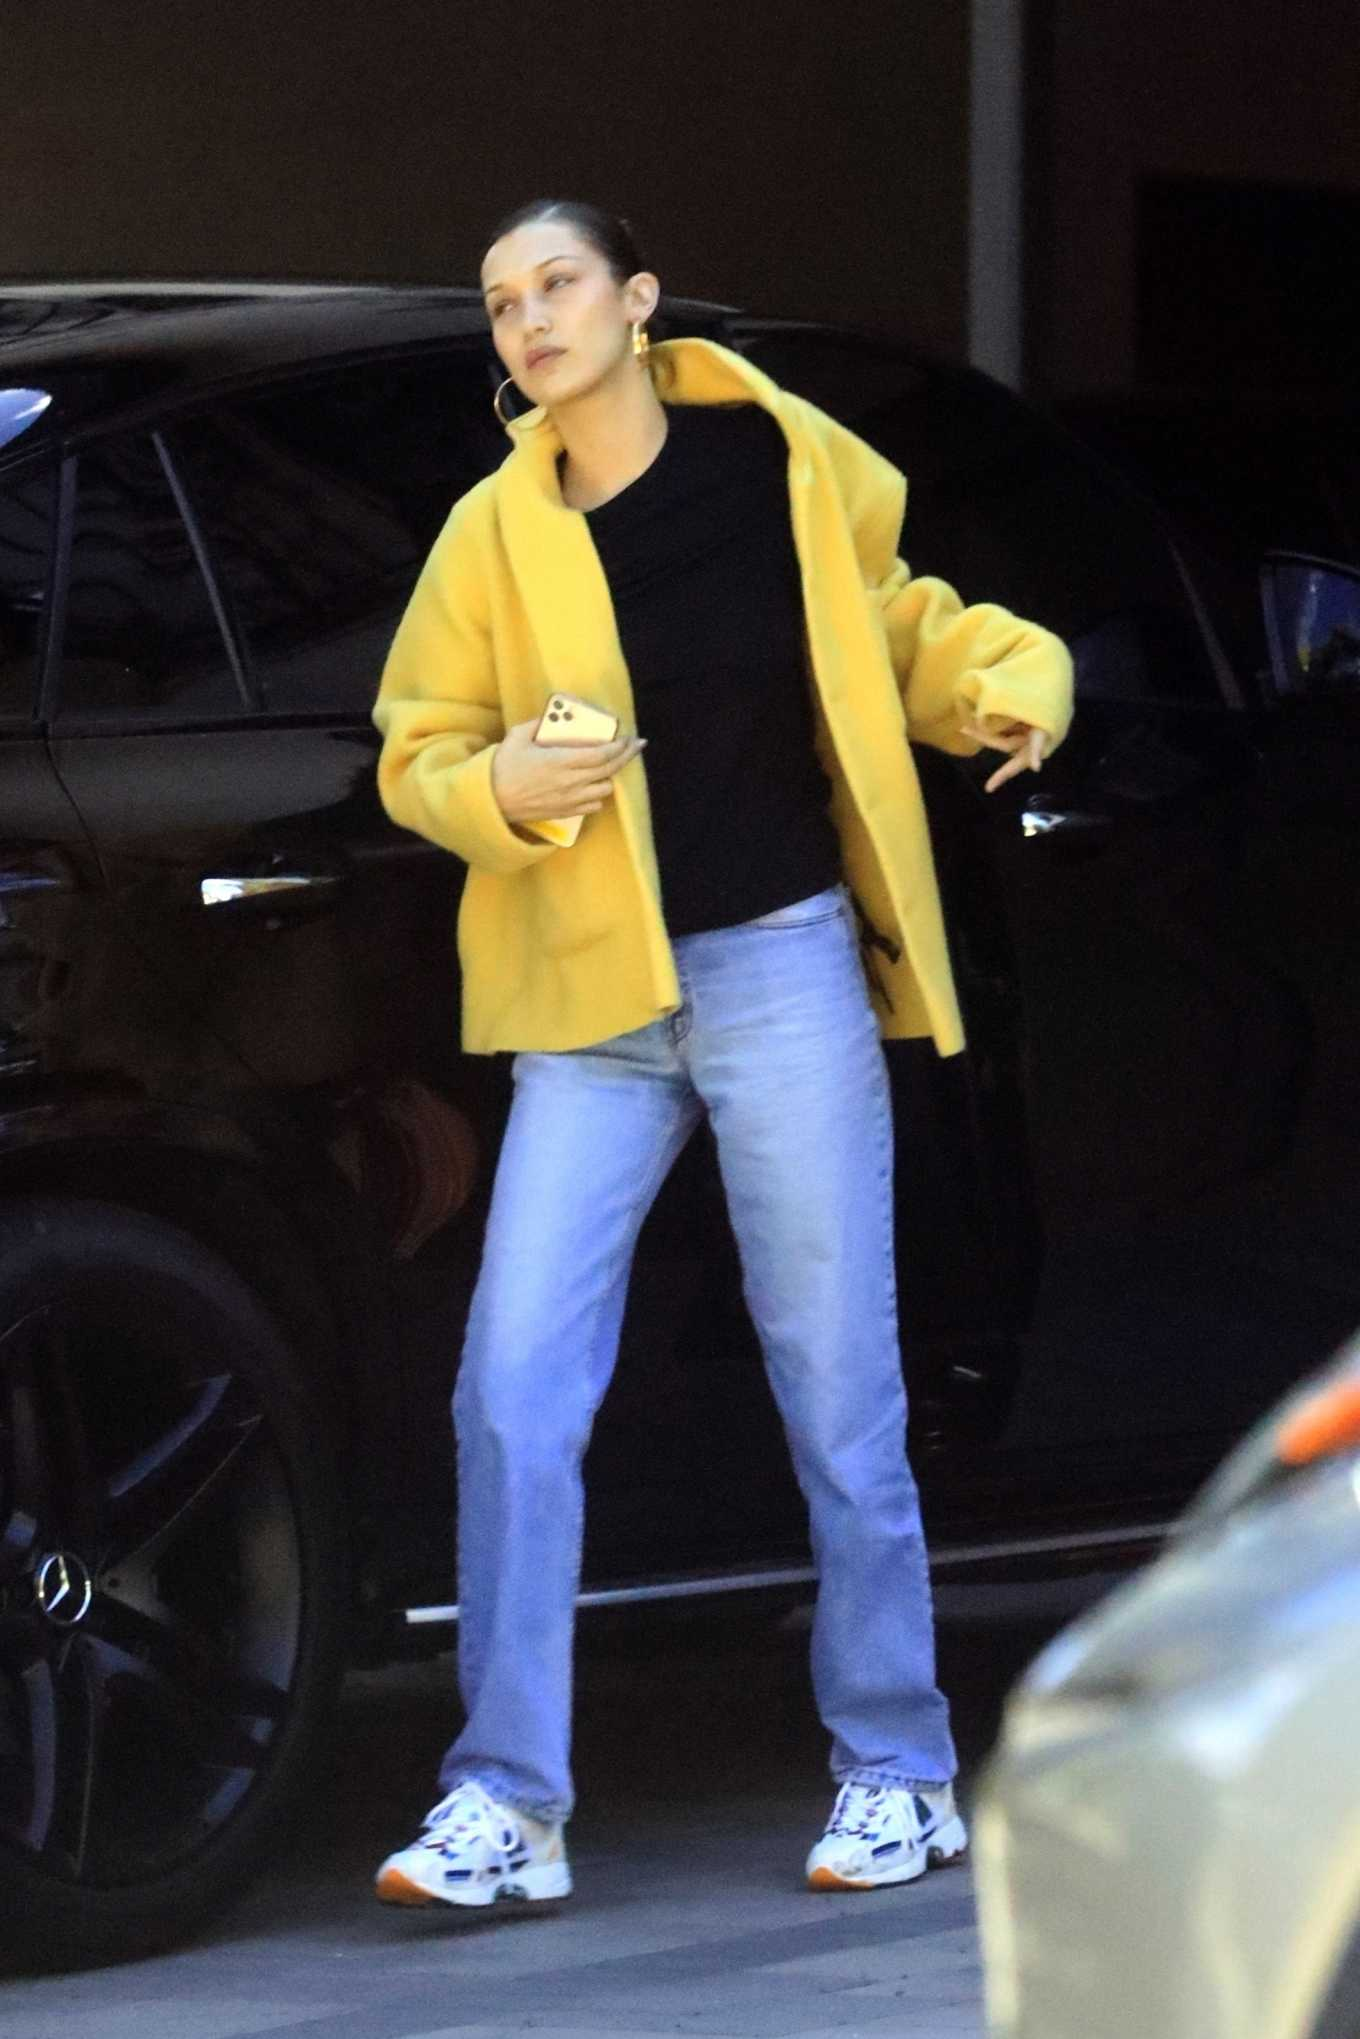 Bella Hadid, white sneakers, leather, yellow jacket, chunky, blue sneakers, black tee, lace-up, light blue jeans. Bella Hadid donning chunky white blue lace-up sneakers by New Balance